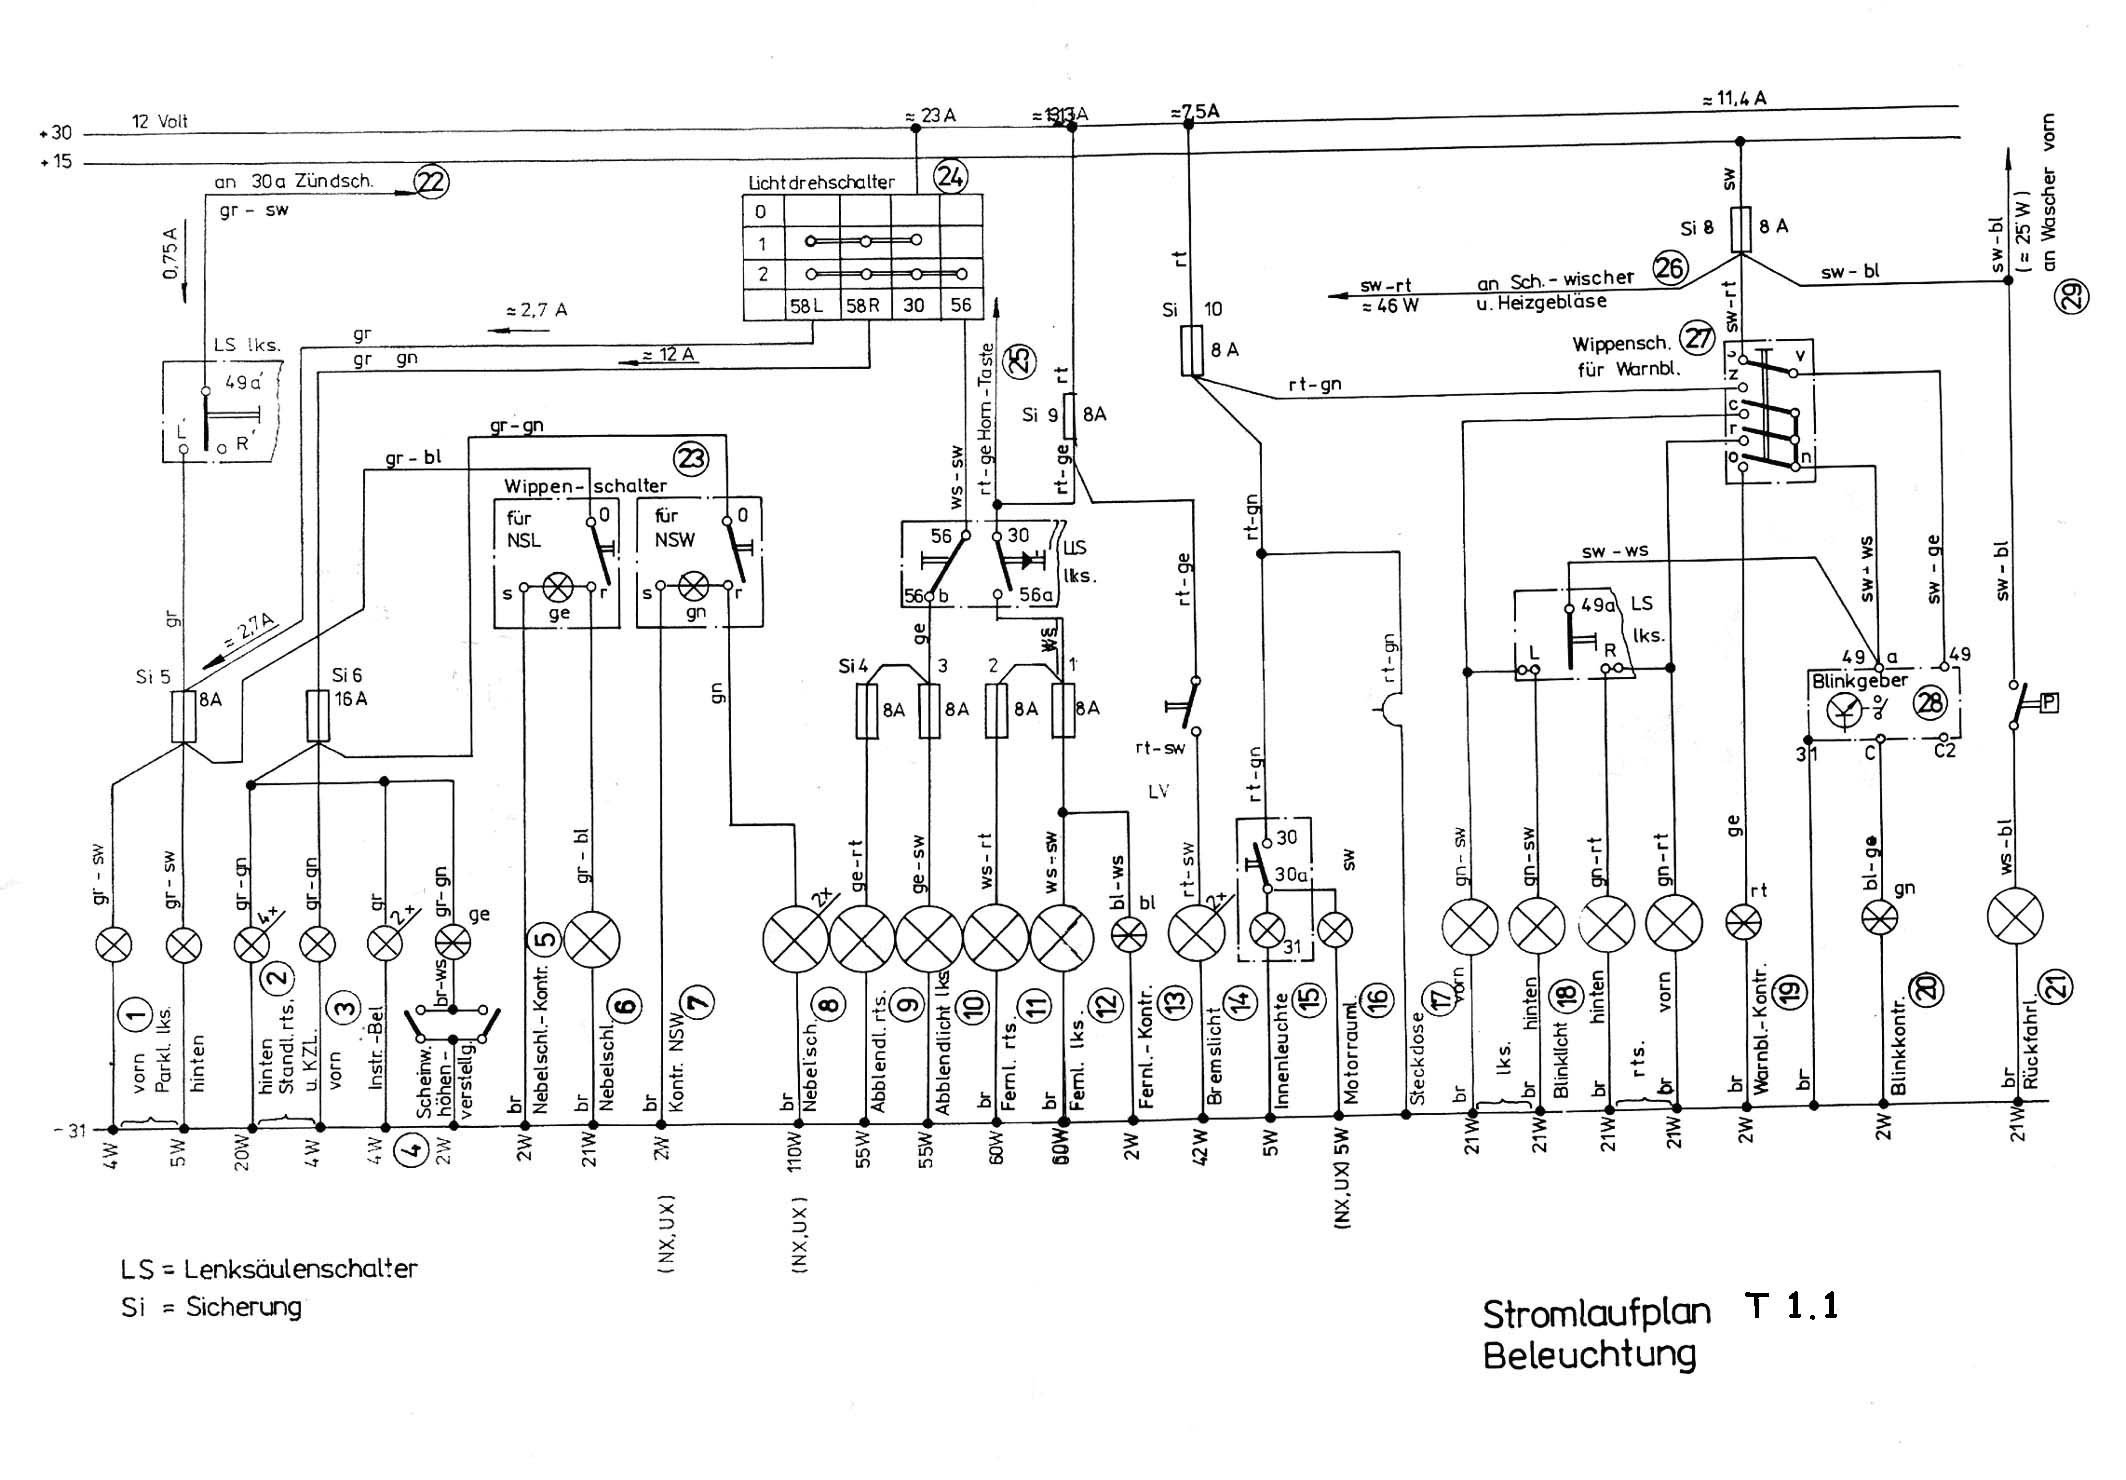 Groovy Ocean Led Wiring Diagram Led Schematic Diagram Led Engine Diagram Wiring Digital Resources Indicompassionincorg